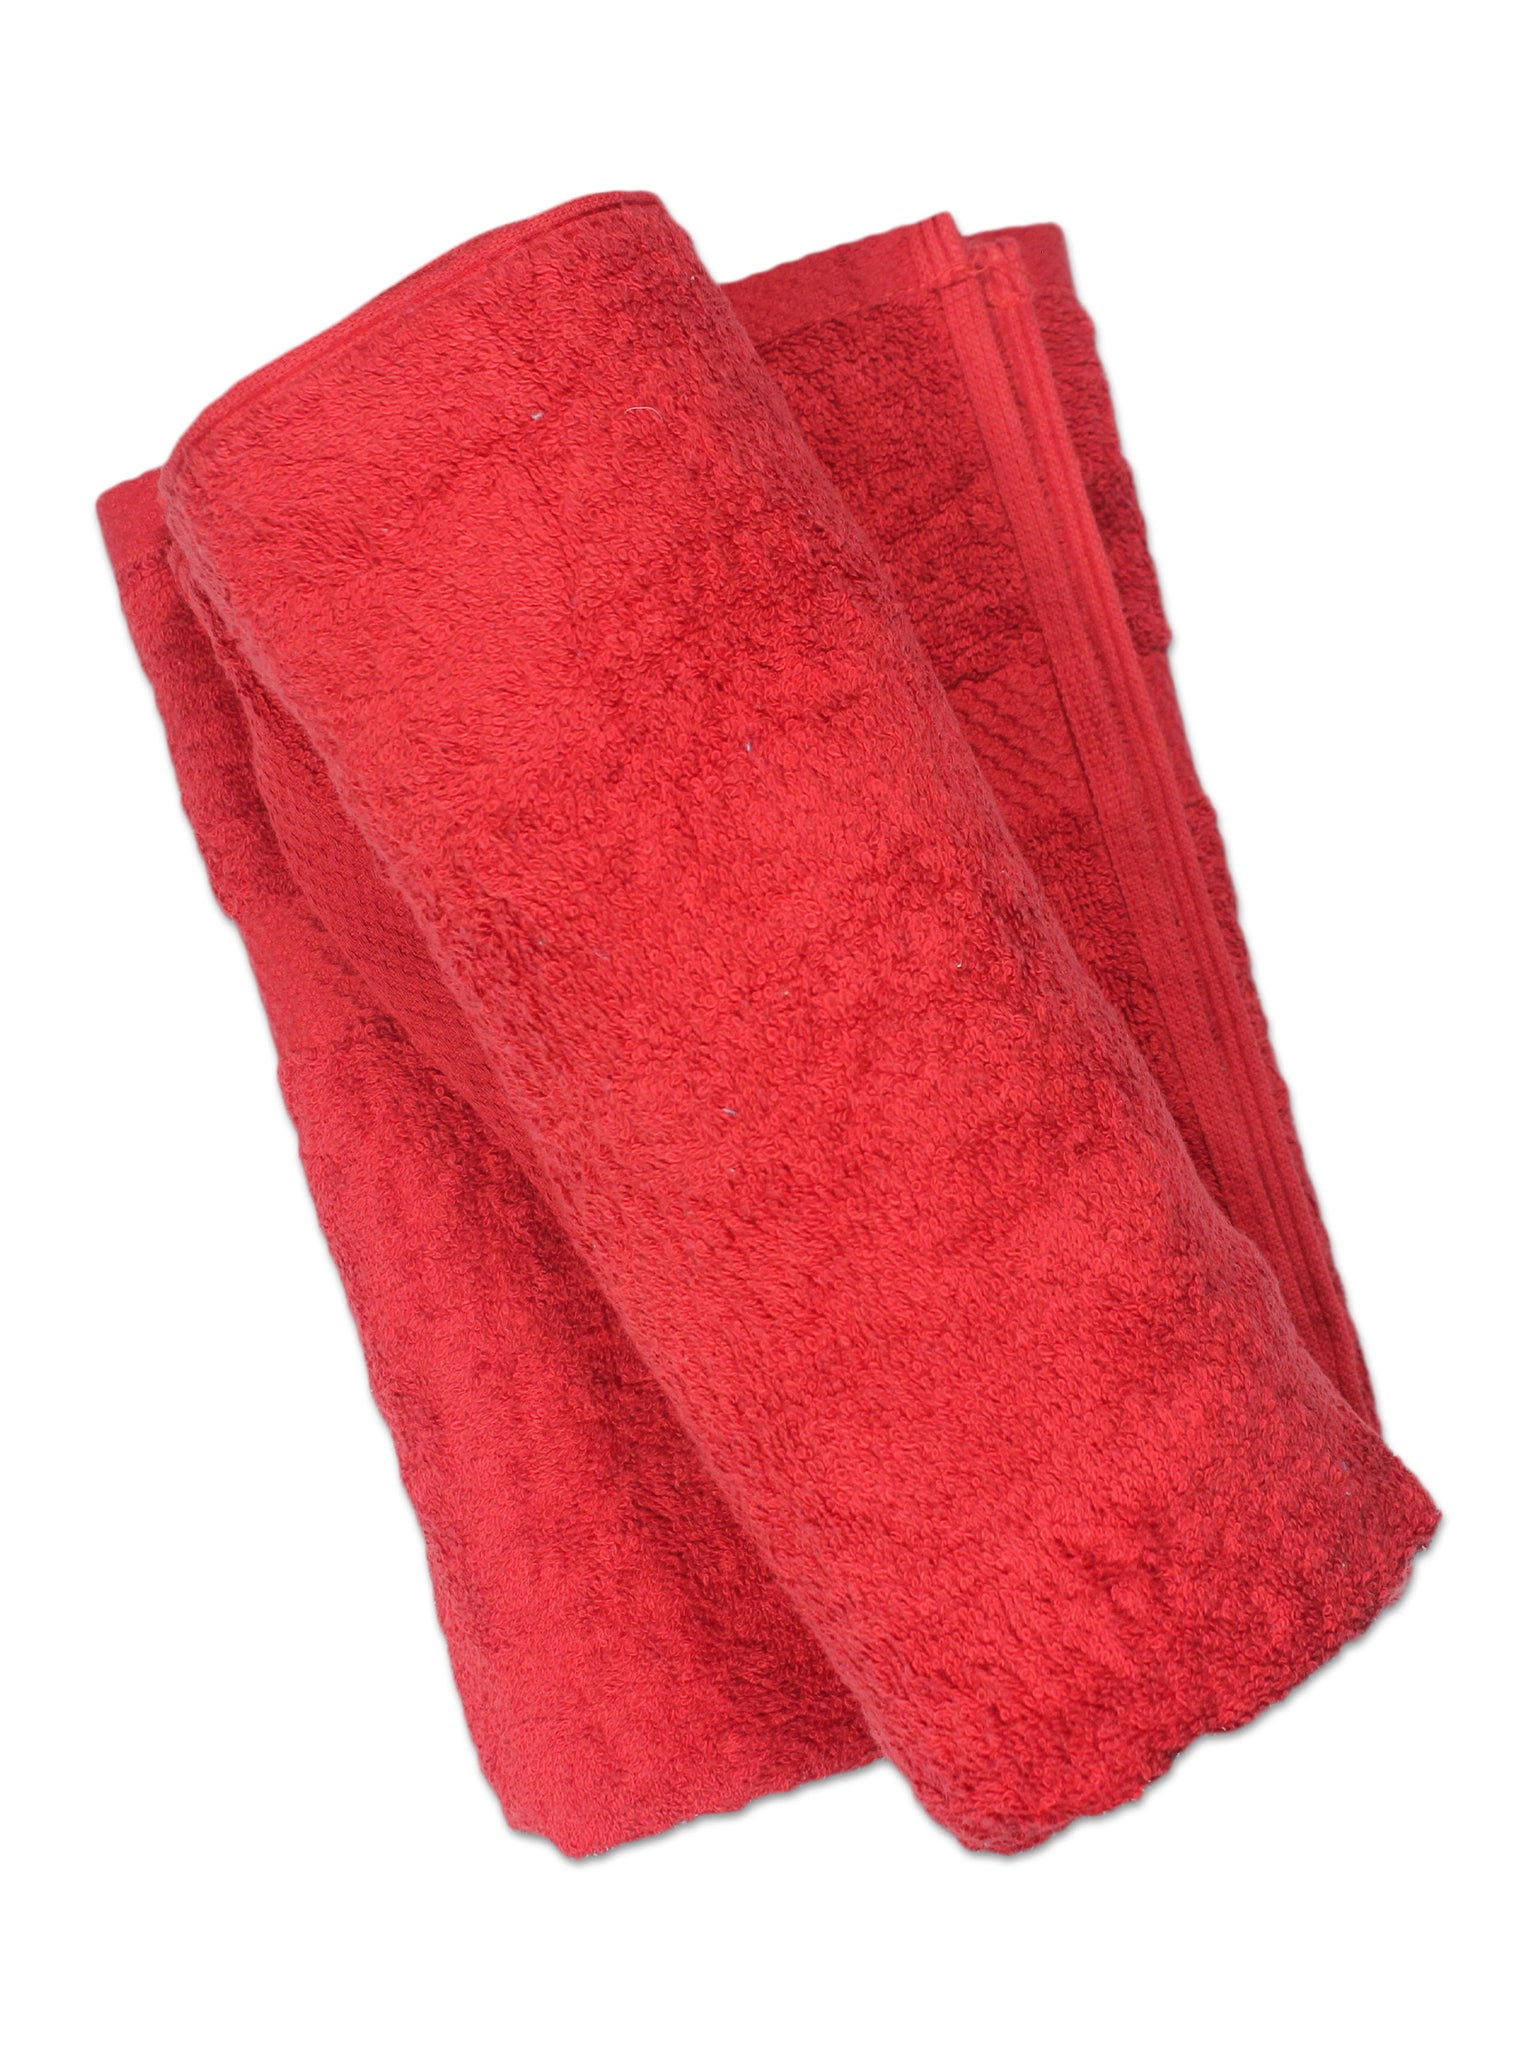 Super Absorber Bath Towel (24*48) Pack of Two Red